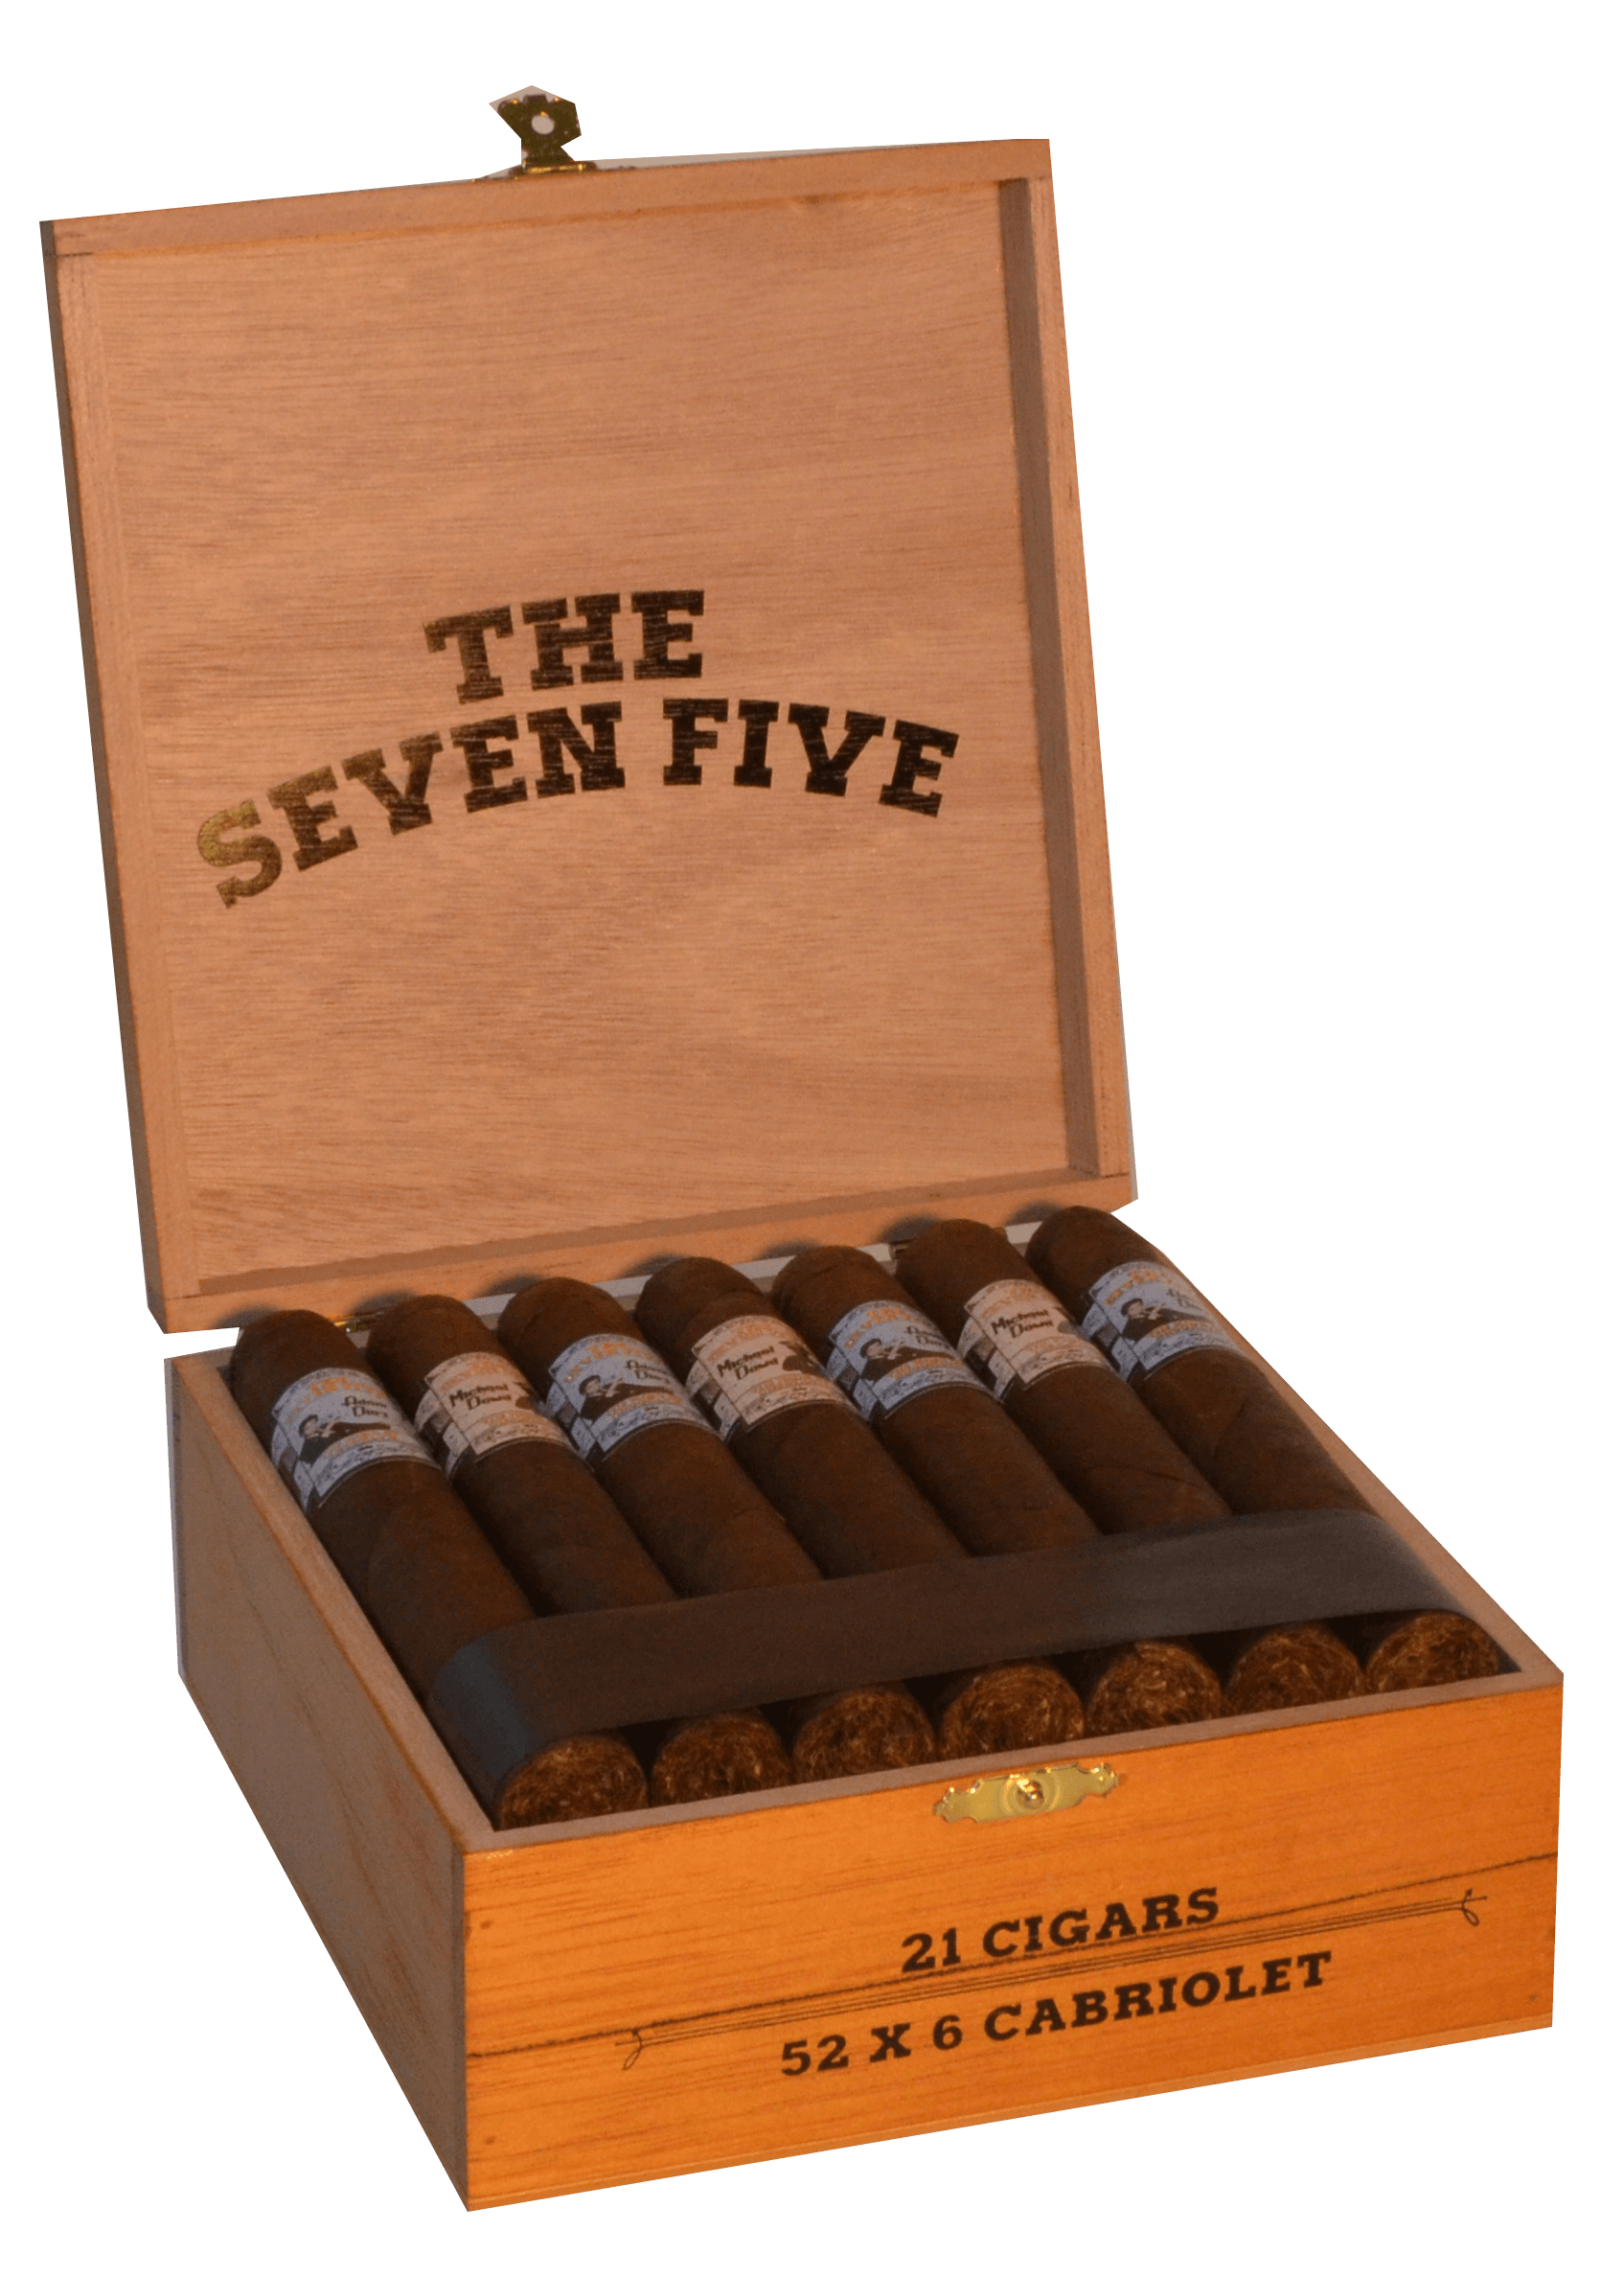 TheSevenFive_CABRIOLET_52x6_OPEN